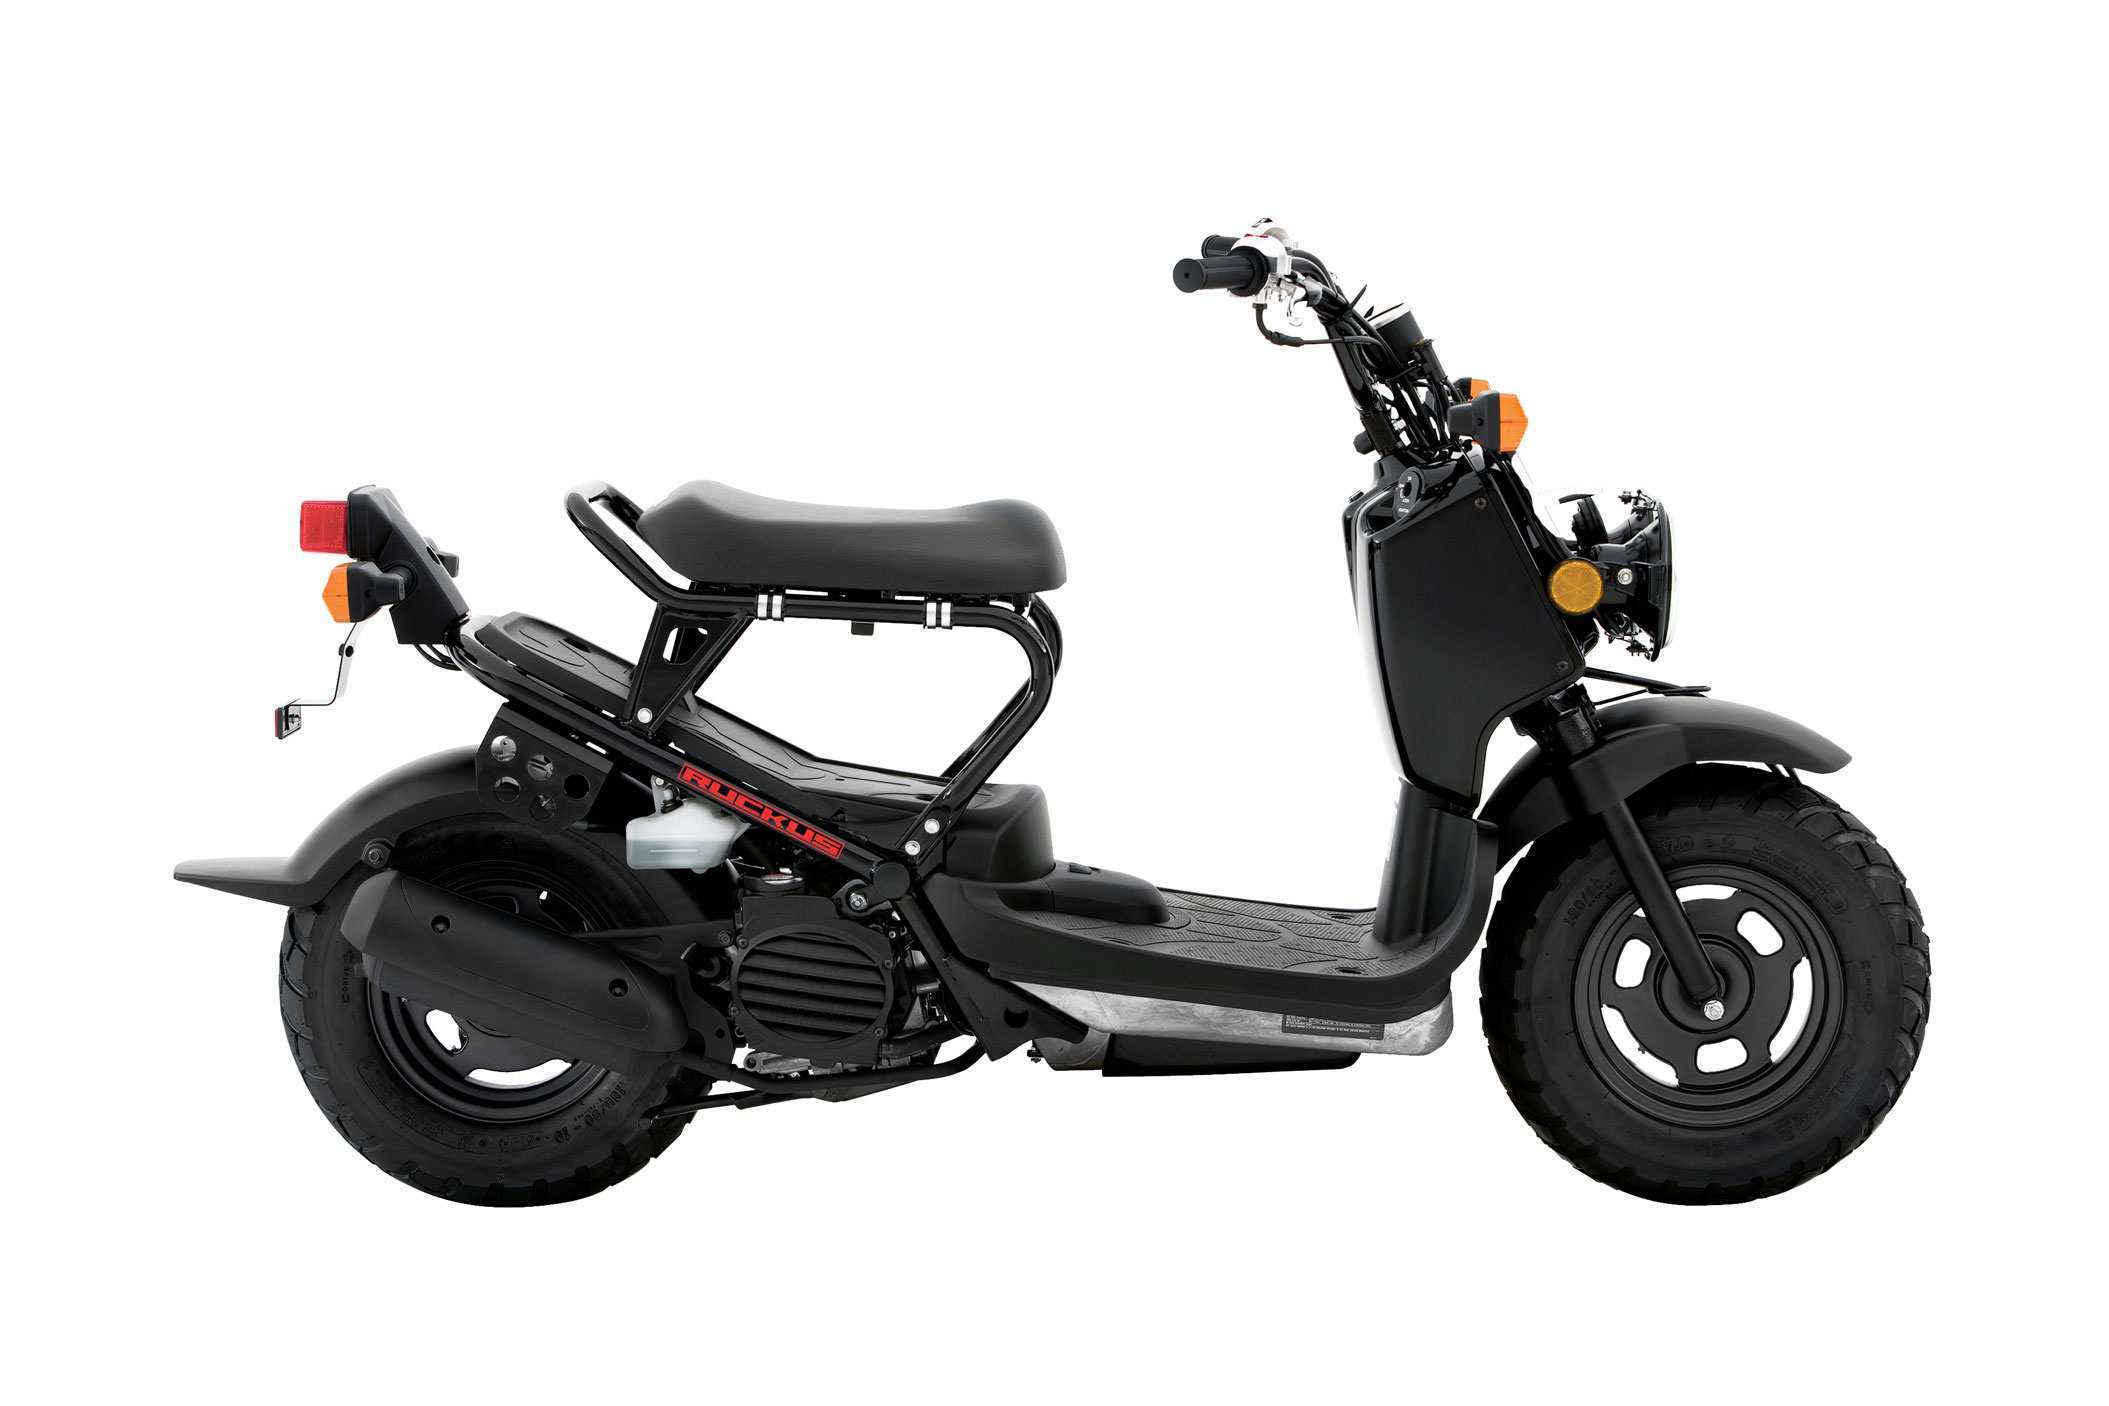 98 The Best Honda Zoomer 2020 Release Date